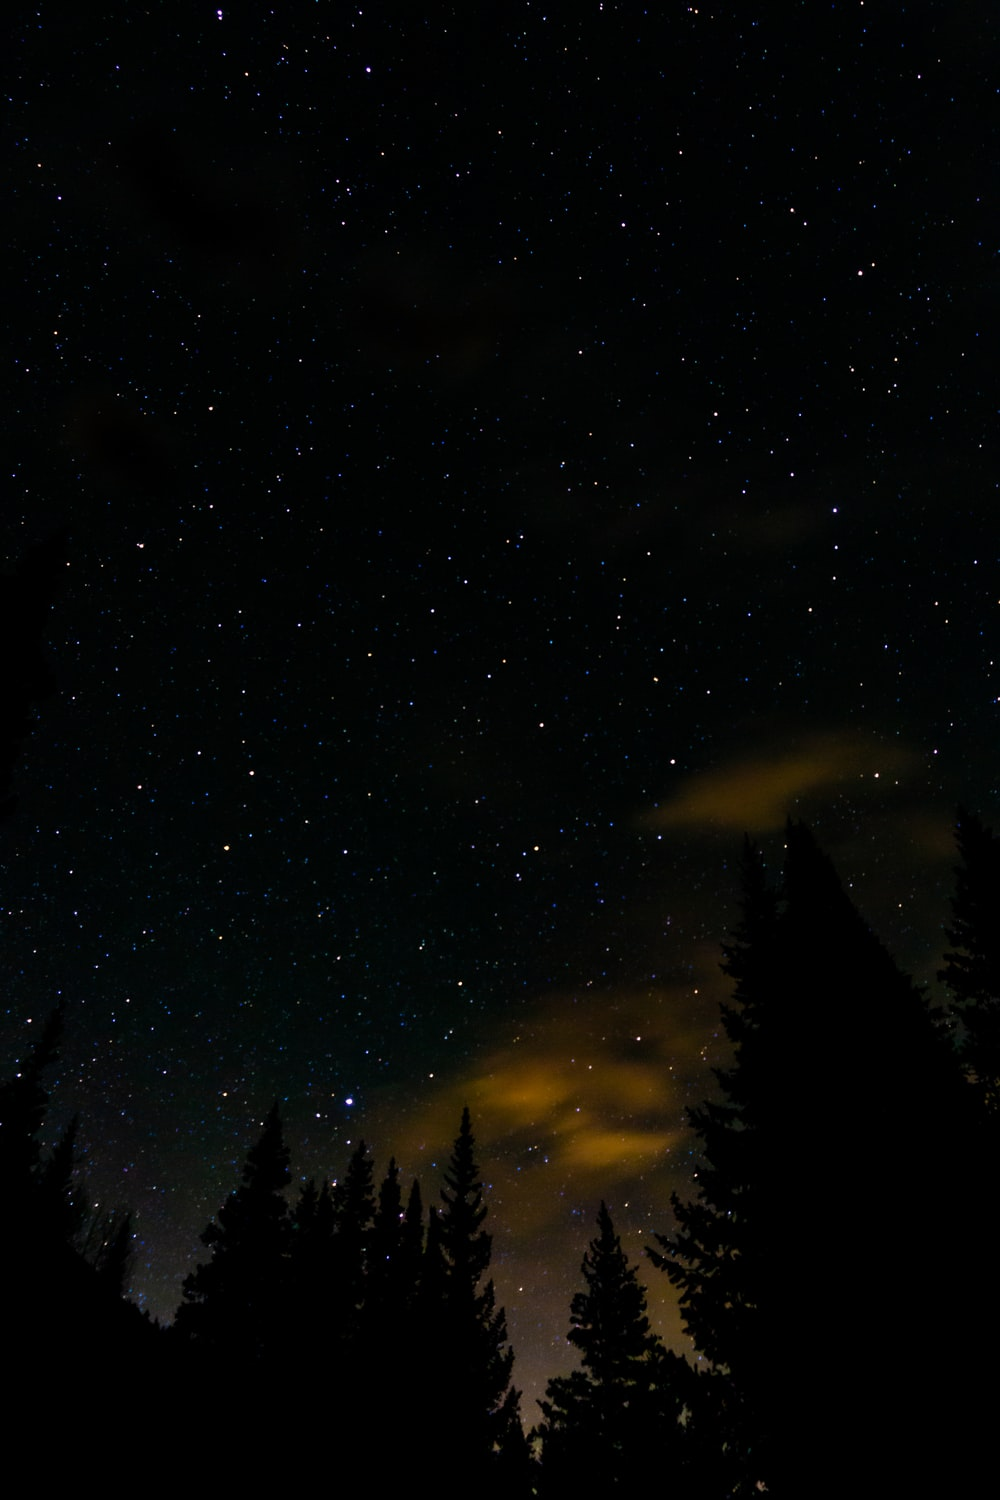 silhouette of trees during night time